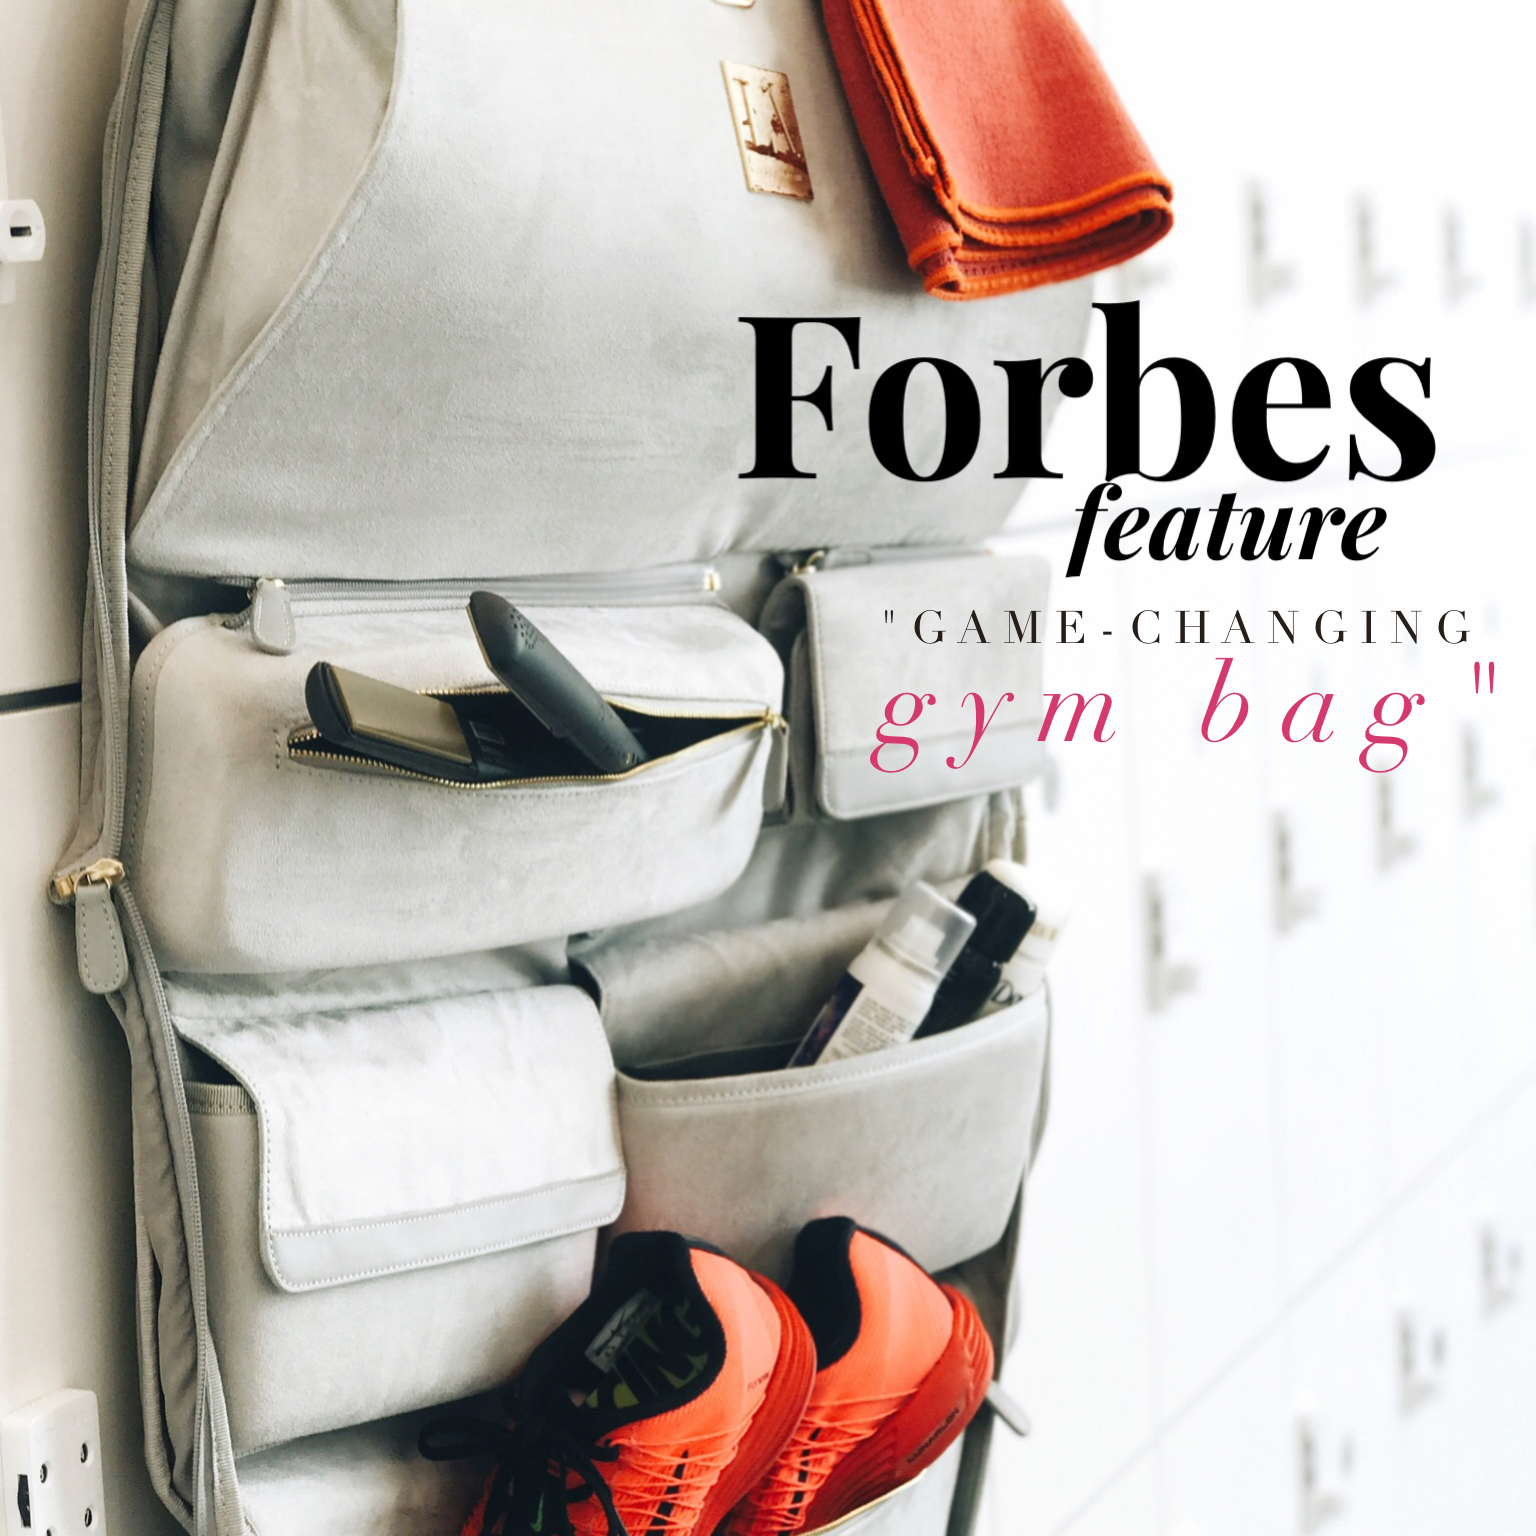 LA MOVE GYM BAG - Forbes - July 2017